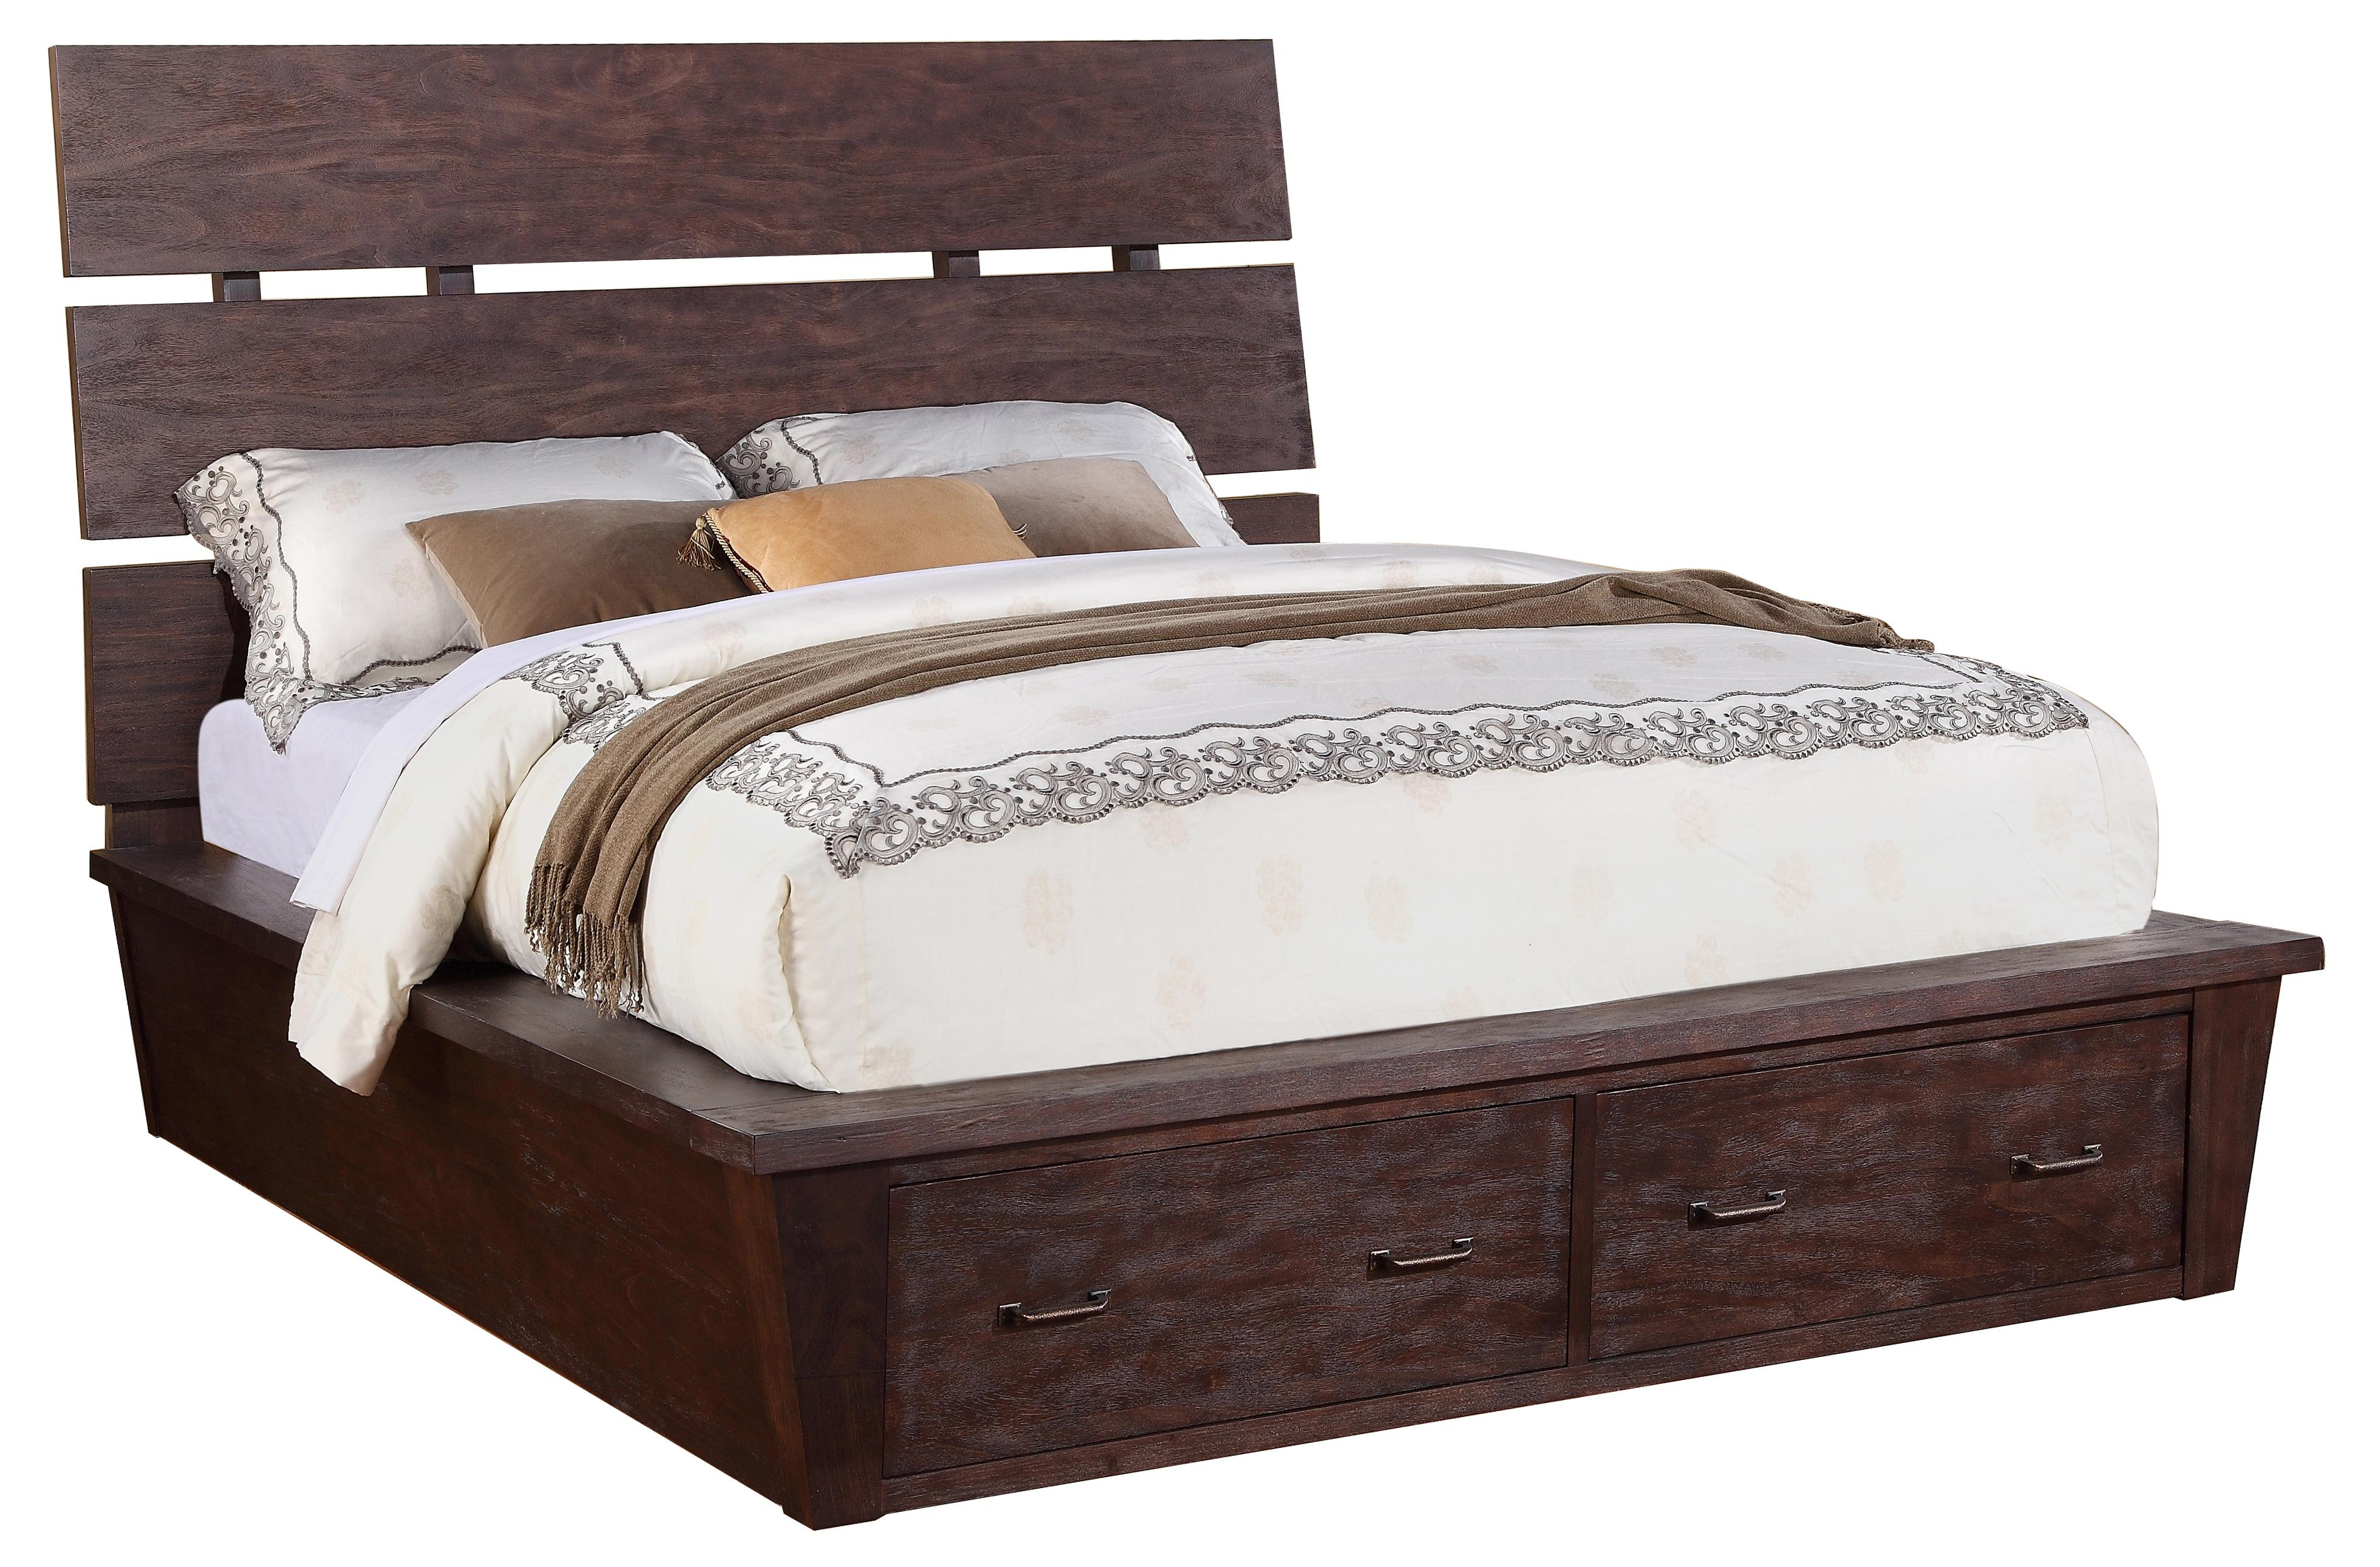 queen platform storage bed with 2 drawers by riverside furniture wolf and gardiner wolf furniture. Black Bedroom Furniture Sets. Home Design Ideas